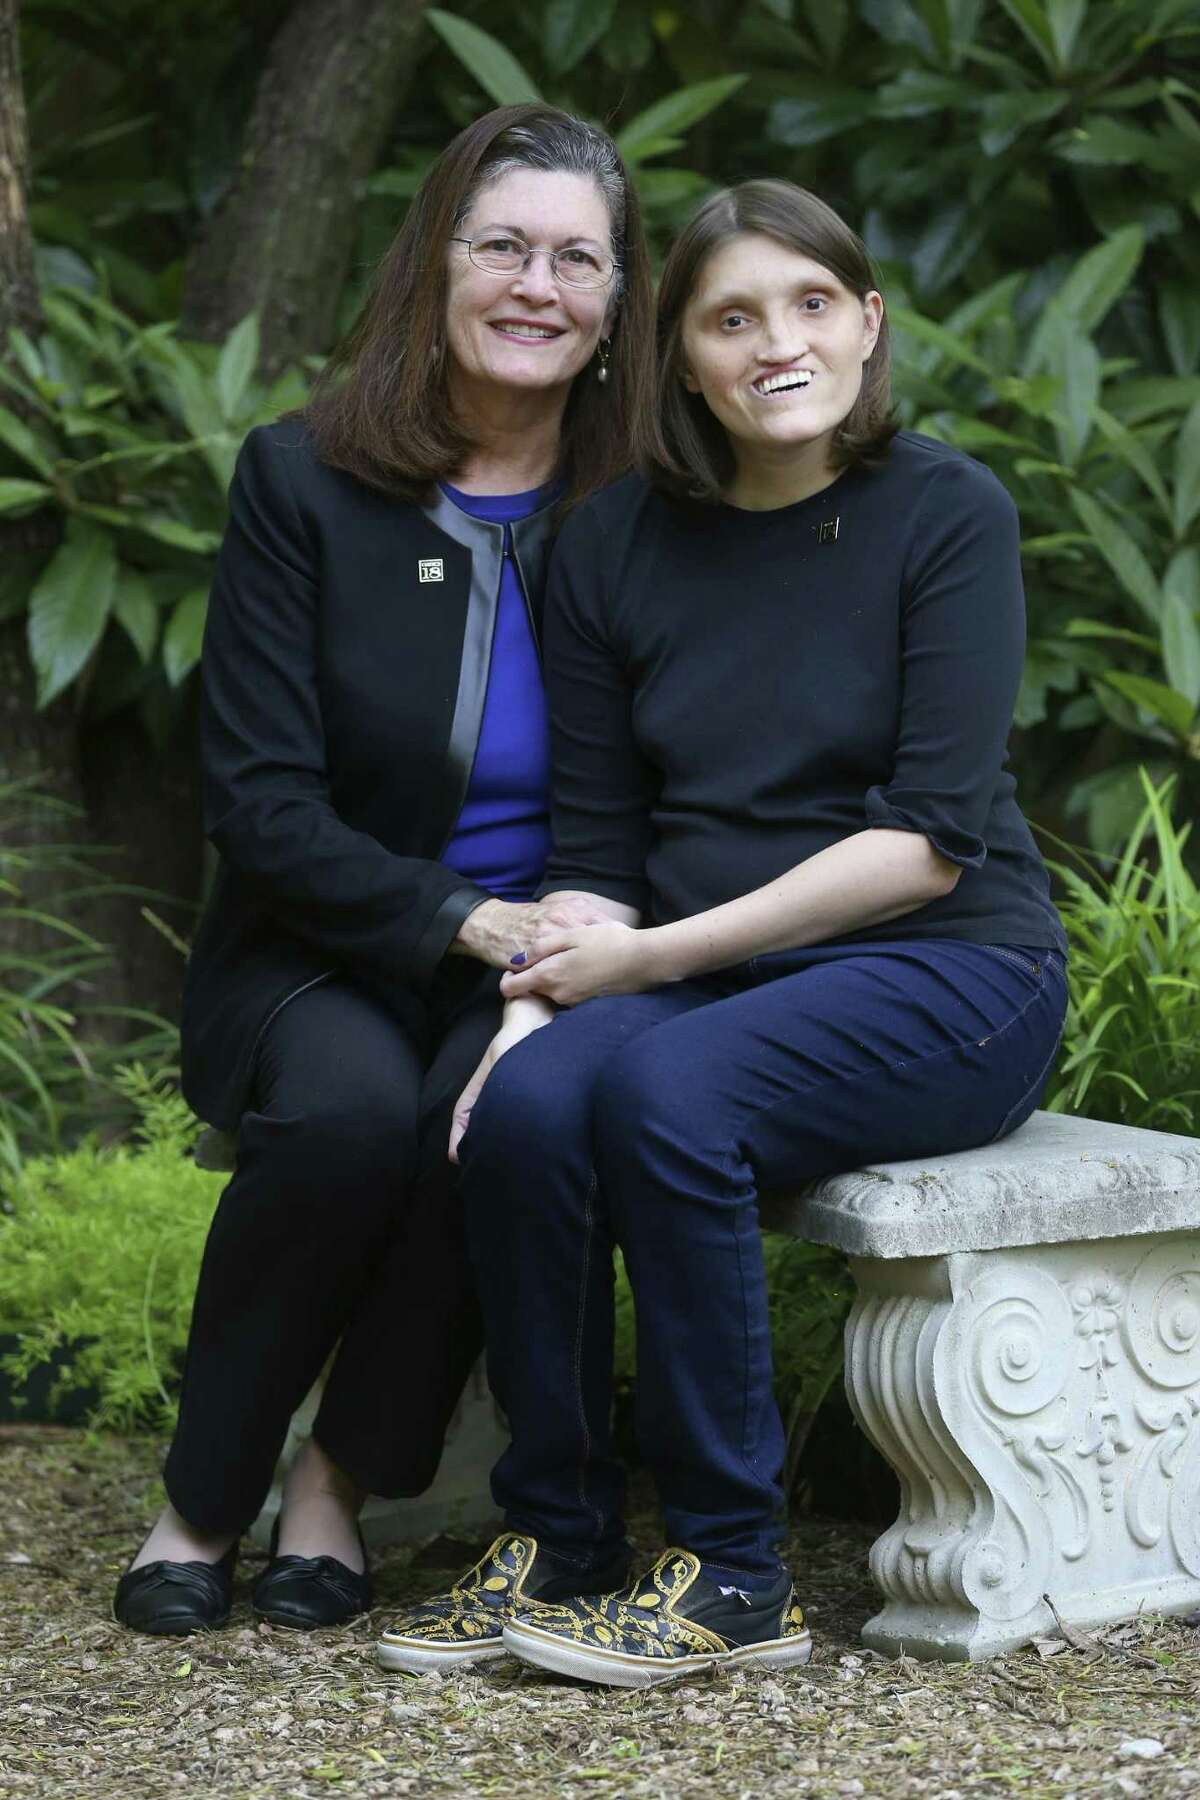 Jannine Cody, left, sits with her daughter, Elizabeth, on Nov. 6, 2018, outside their home, which is the also the office for the Chromosome 18 Registry and Research Society. Cody founded the organization, which works on behalf of people born with chromosome 18 abnormalities, after her daughter was born with the genetic condition.